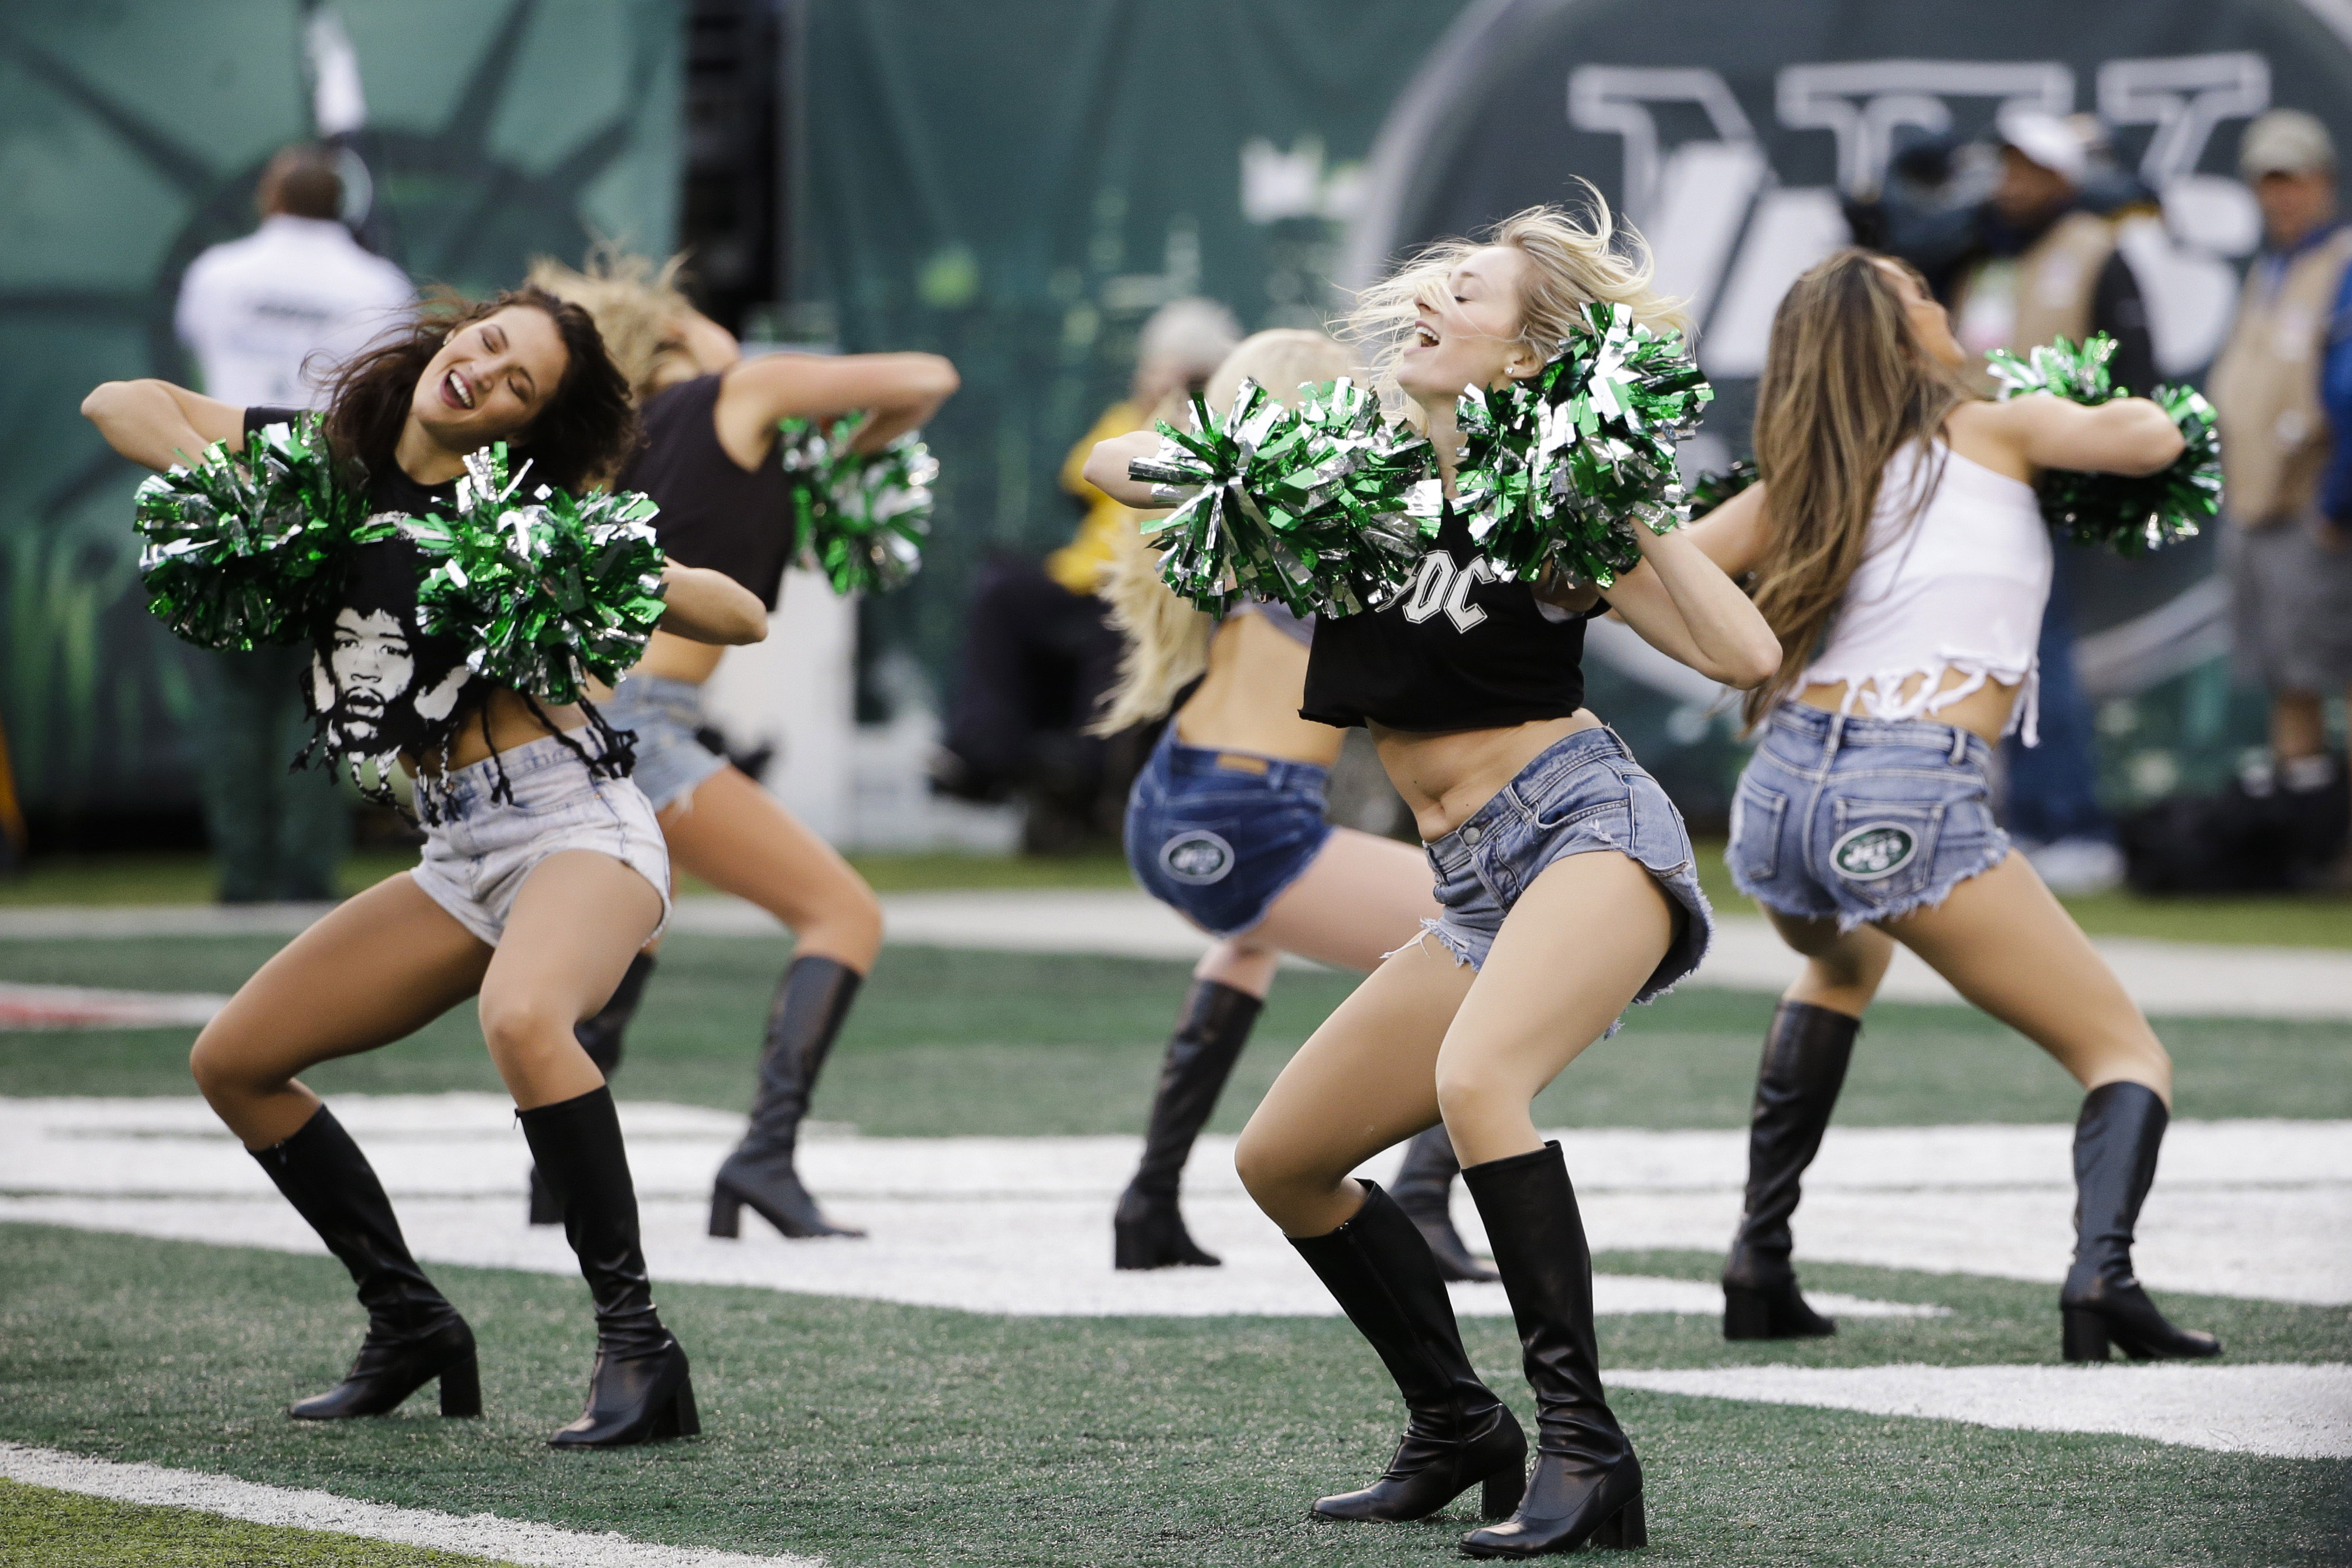 FILE - In this Dec. 27, 2015 file photo, New York Jets cheerleaders perform during the first half of an NFL football game against the New England Patriots in East Rutherford, N.J. The New York Jets have agreed to pay nearly $324,000 to settle a class-acti